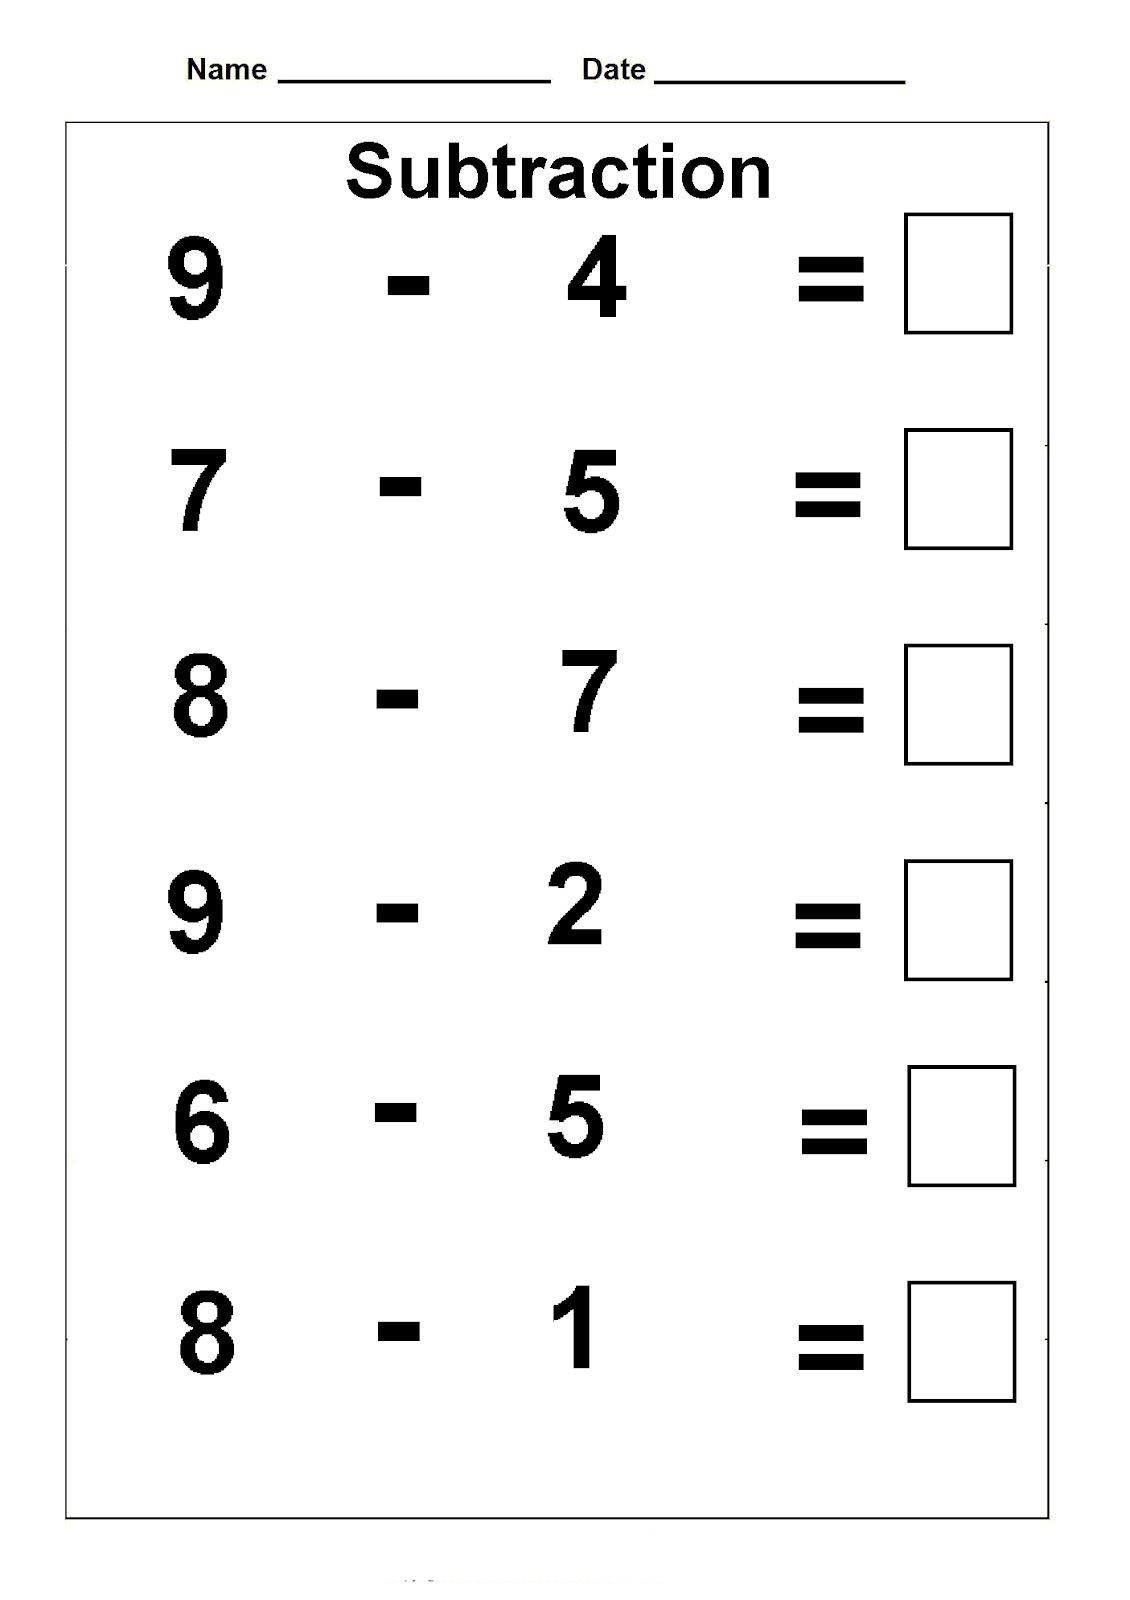 Subtraction Worksheet for 1st Grade 1st Grade Math Worksheets Best Coloring Pages for Kids